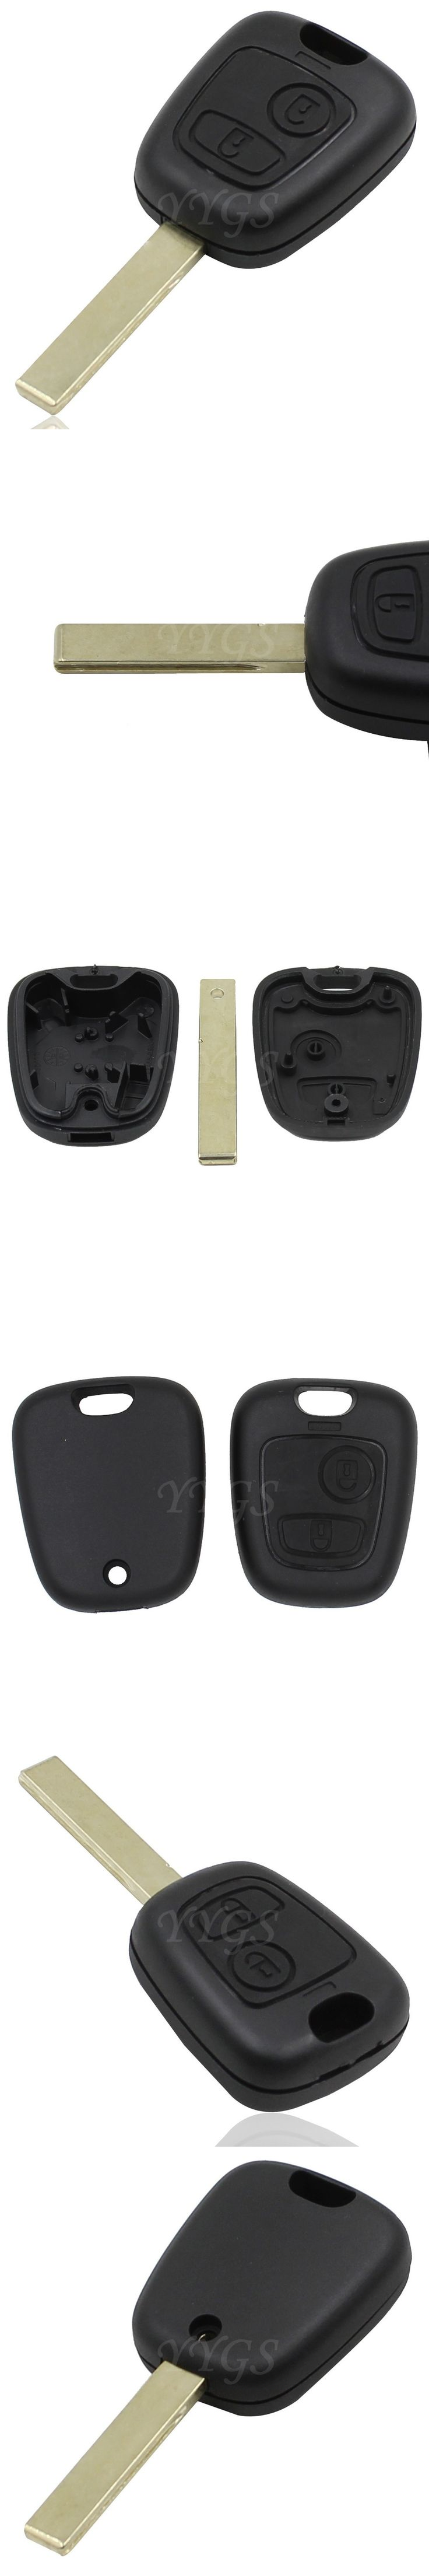 2 Button Remote Replacement Fob Key Shell Case Cover For Peugeot 1007 307 107 207 406 407 Uncut Blade With Groove